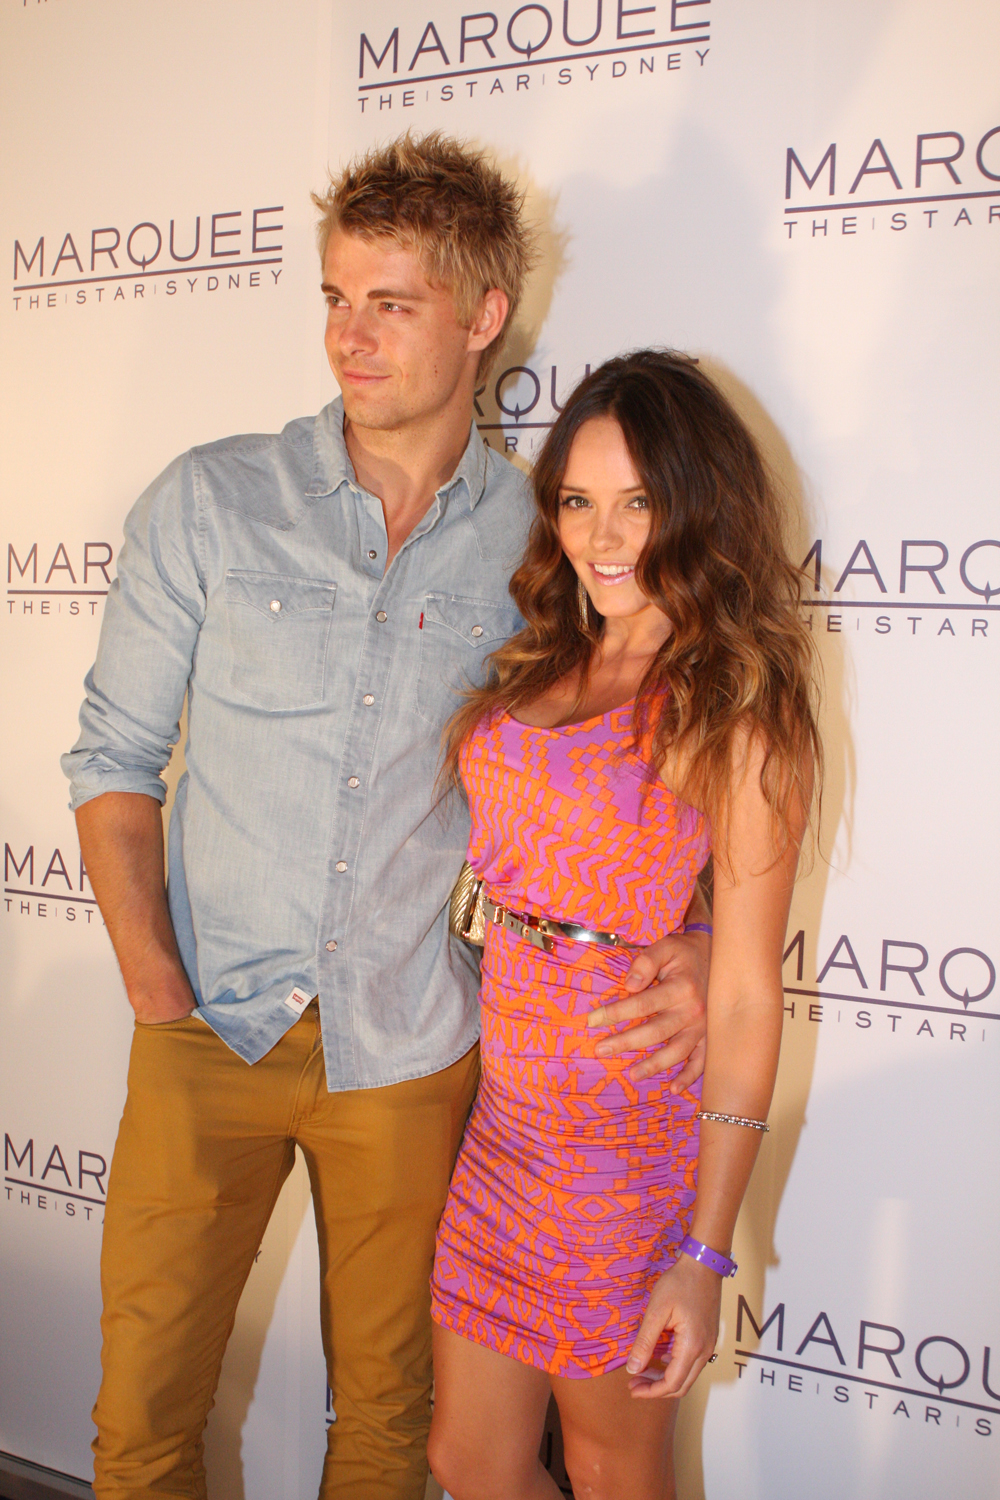 OOPS Rebecca Breeds new images